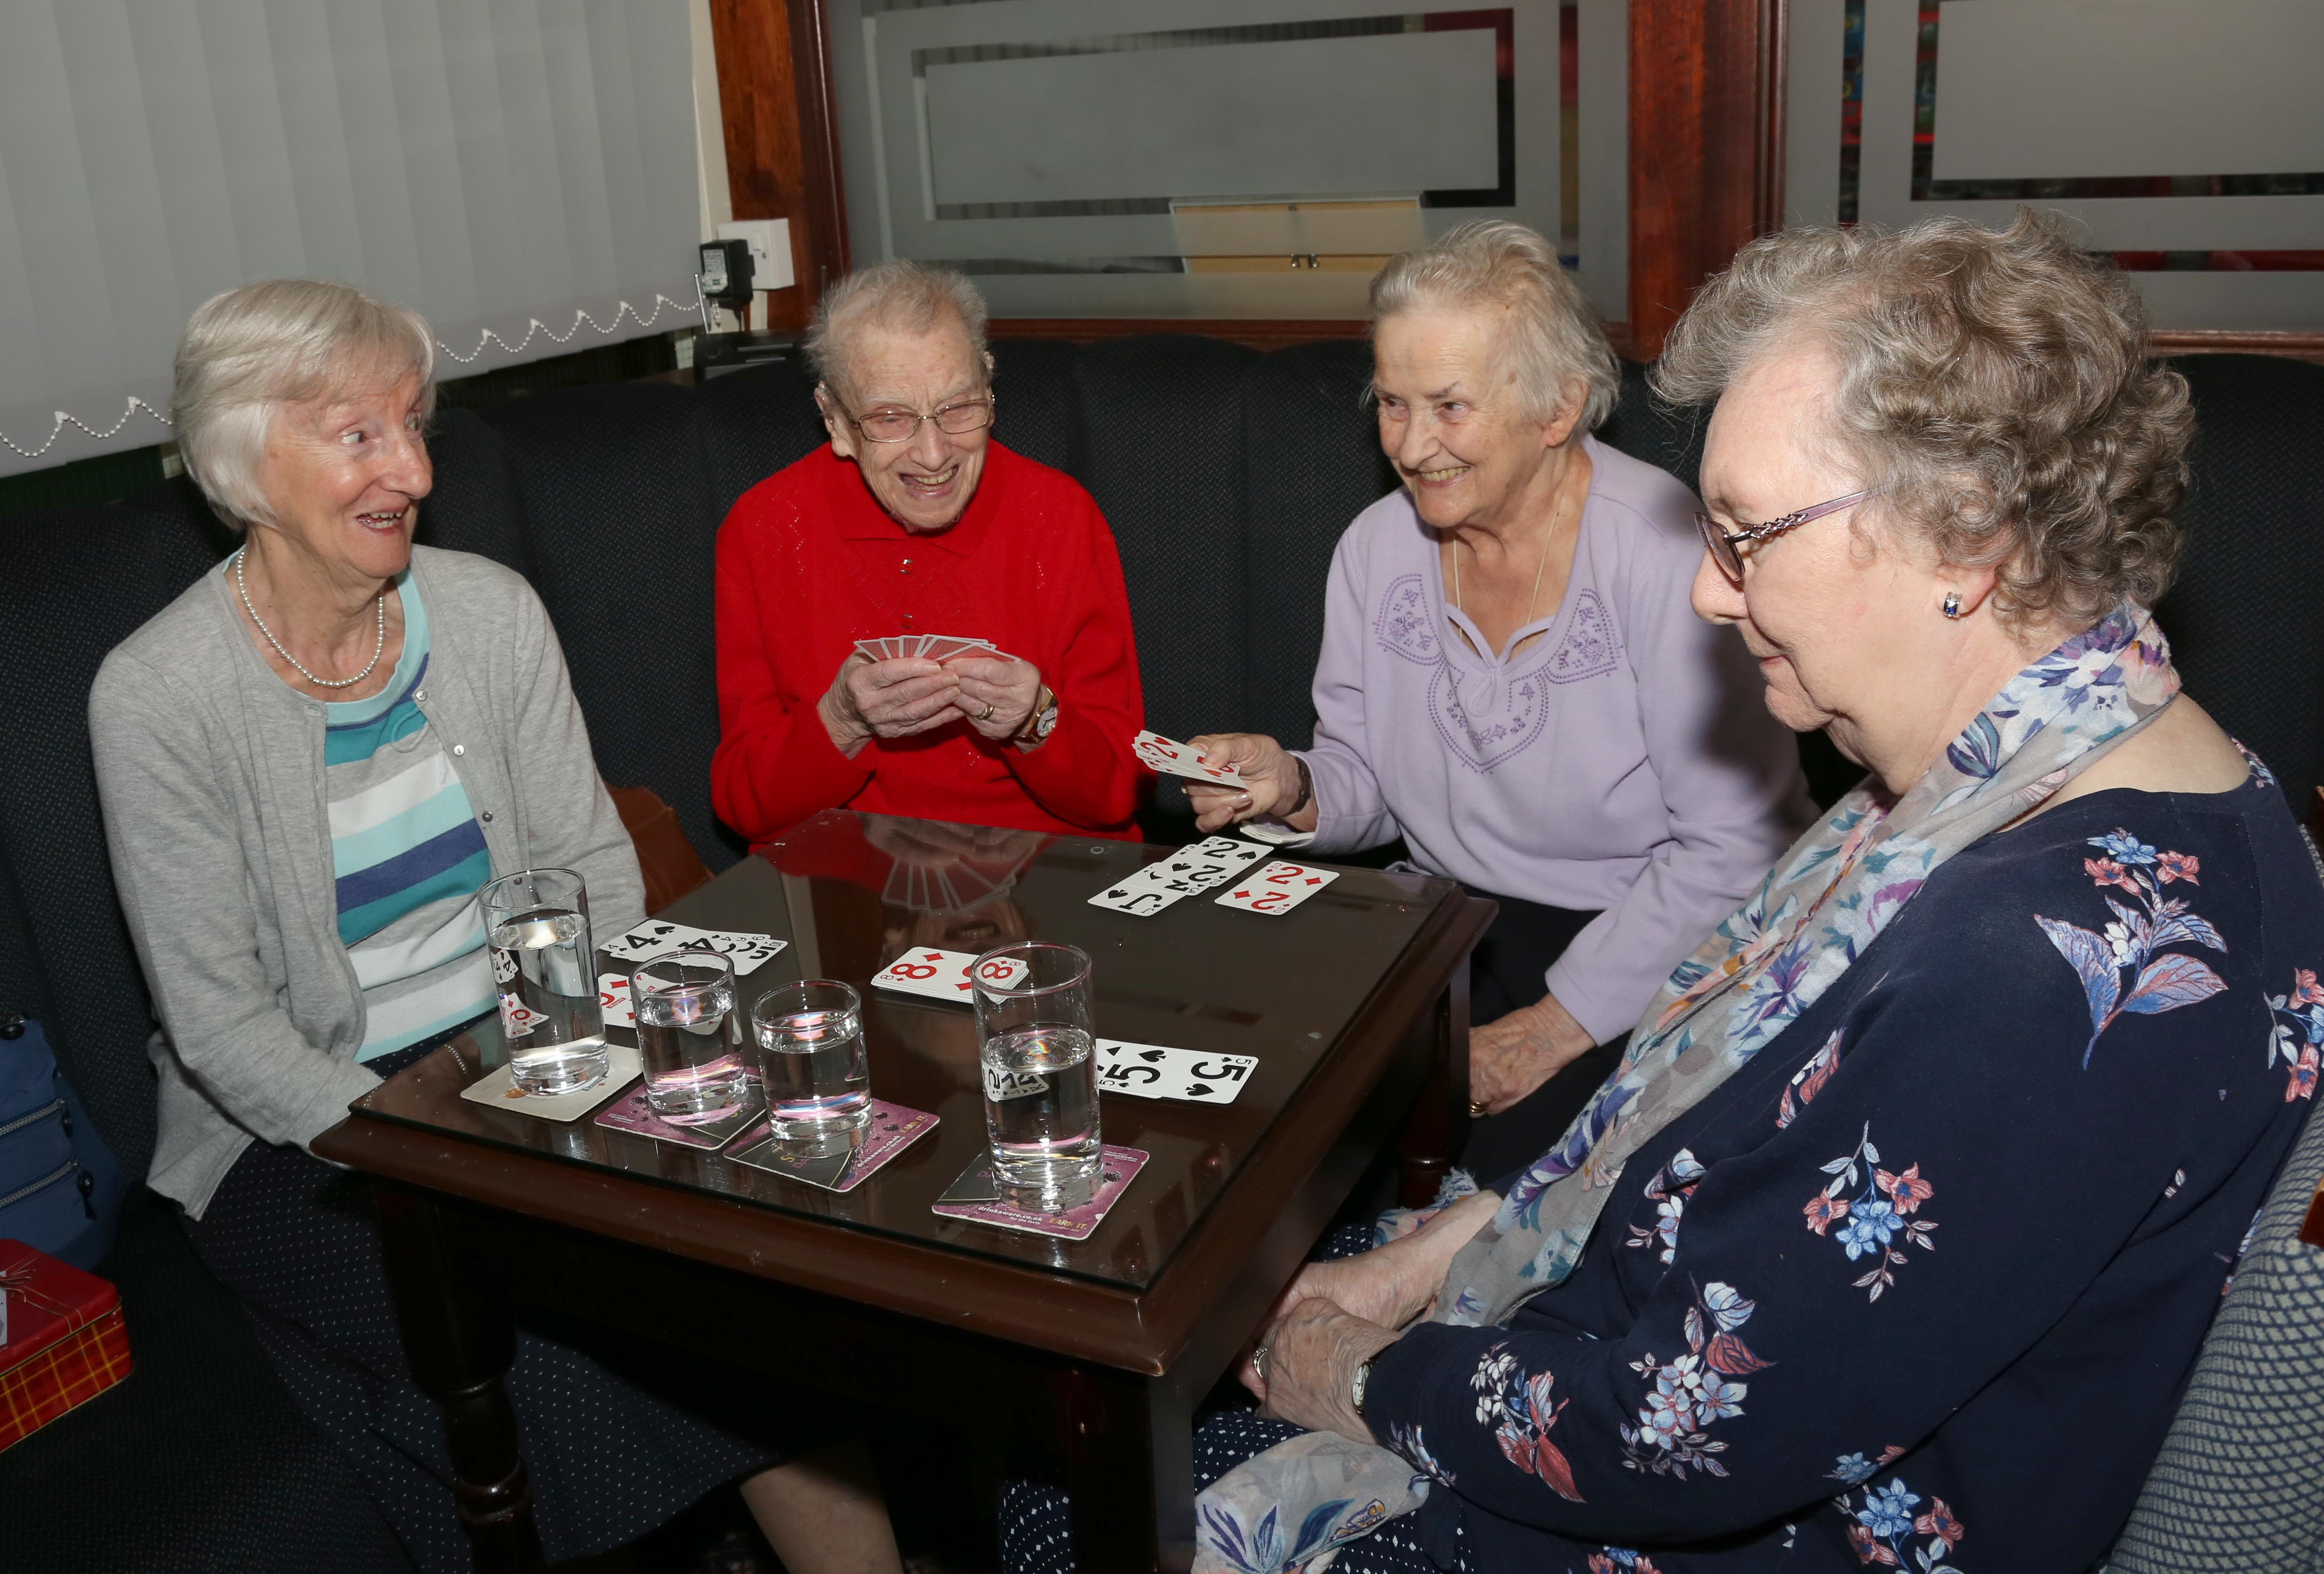 4 people playing cards round a table